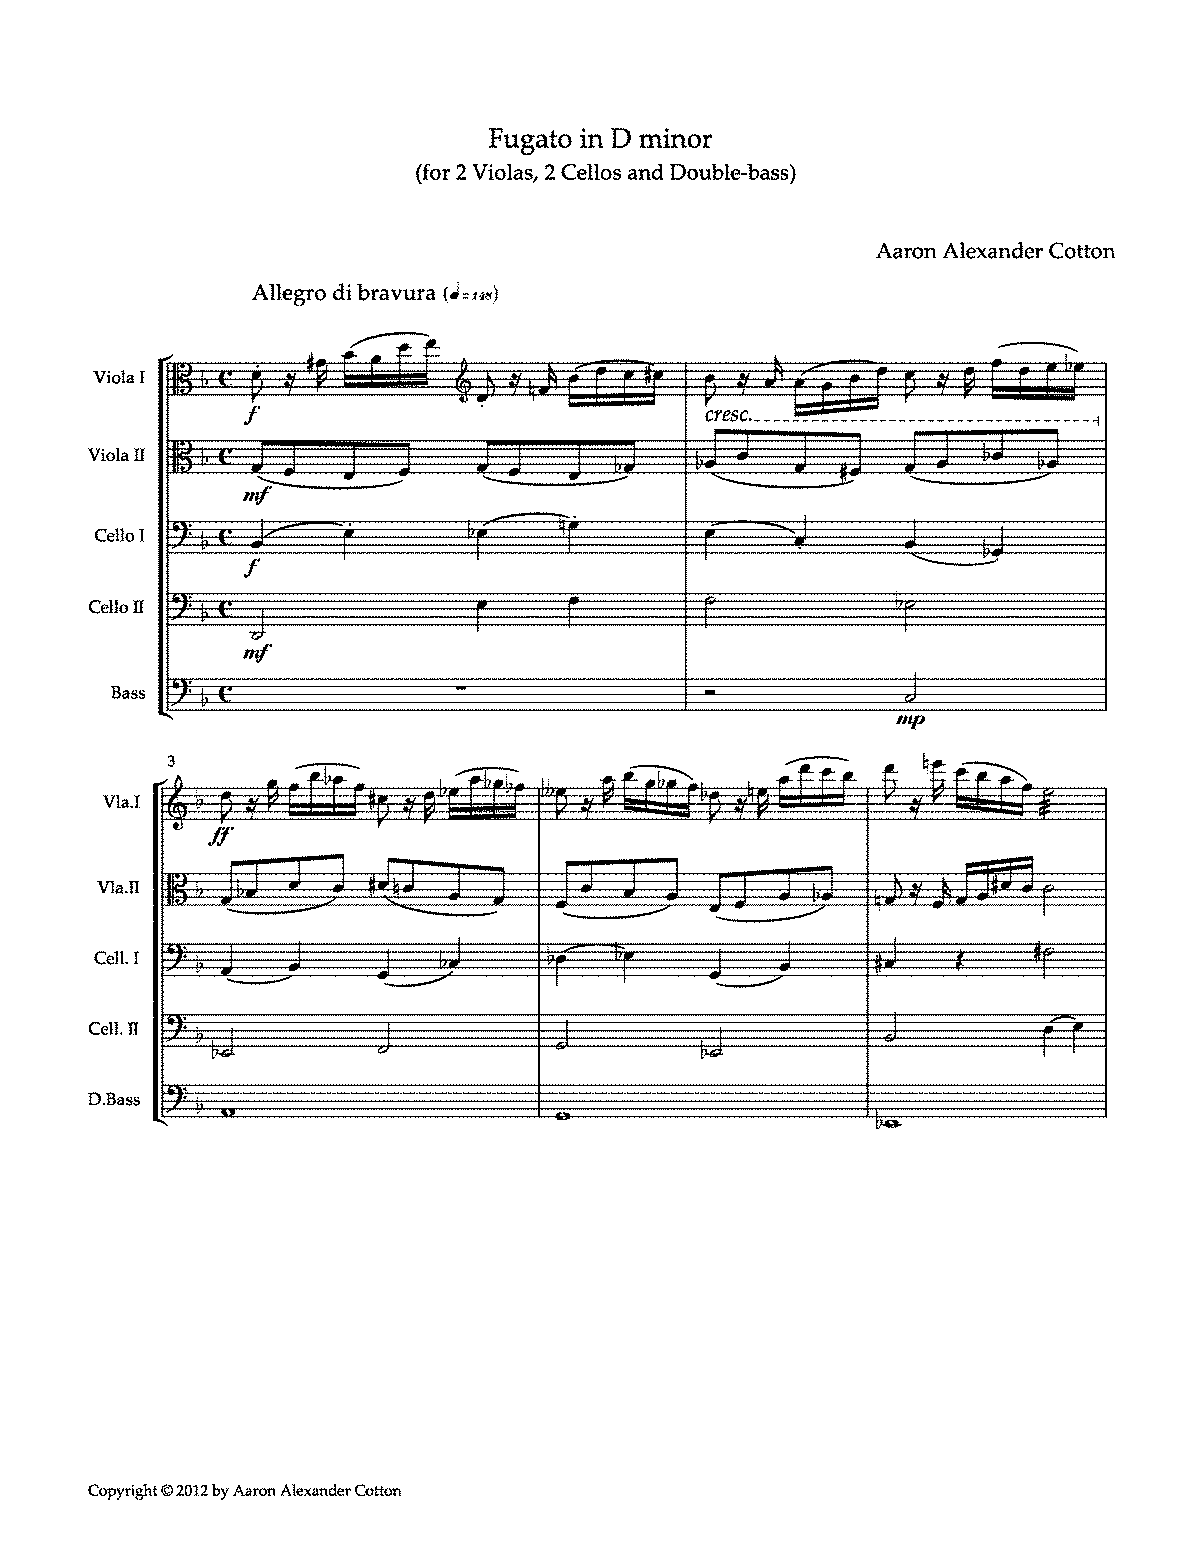 PMLP350864-Fugato in D minor (for 2 Violas, 2 Cellos and Double-bass) by Aaron Alexander Cotton.pdf